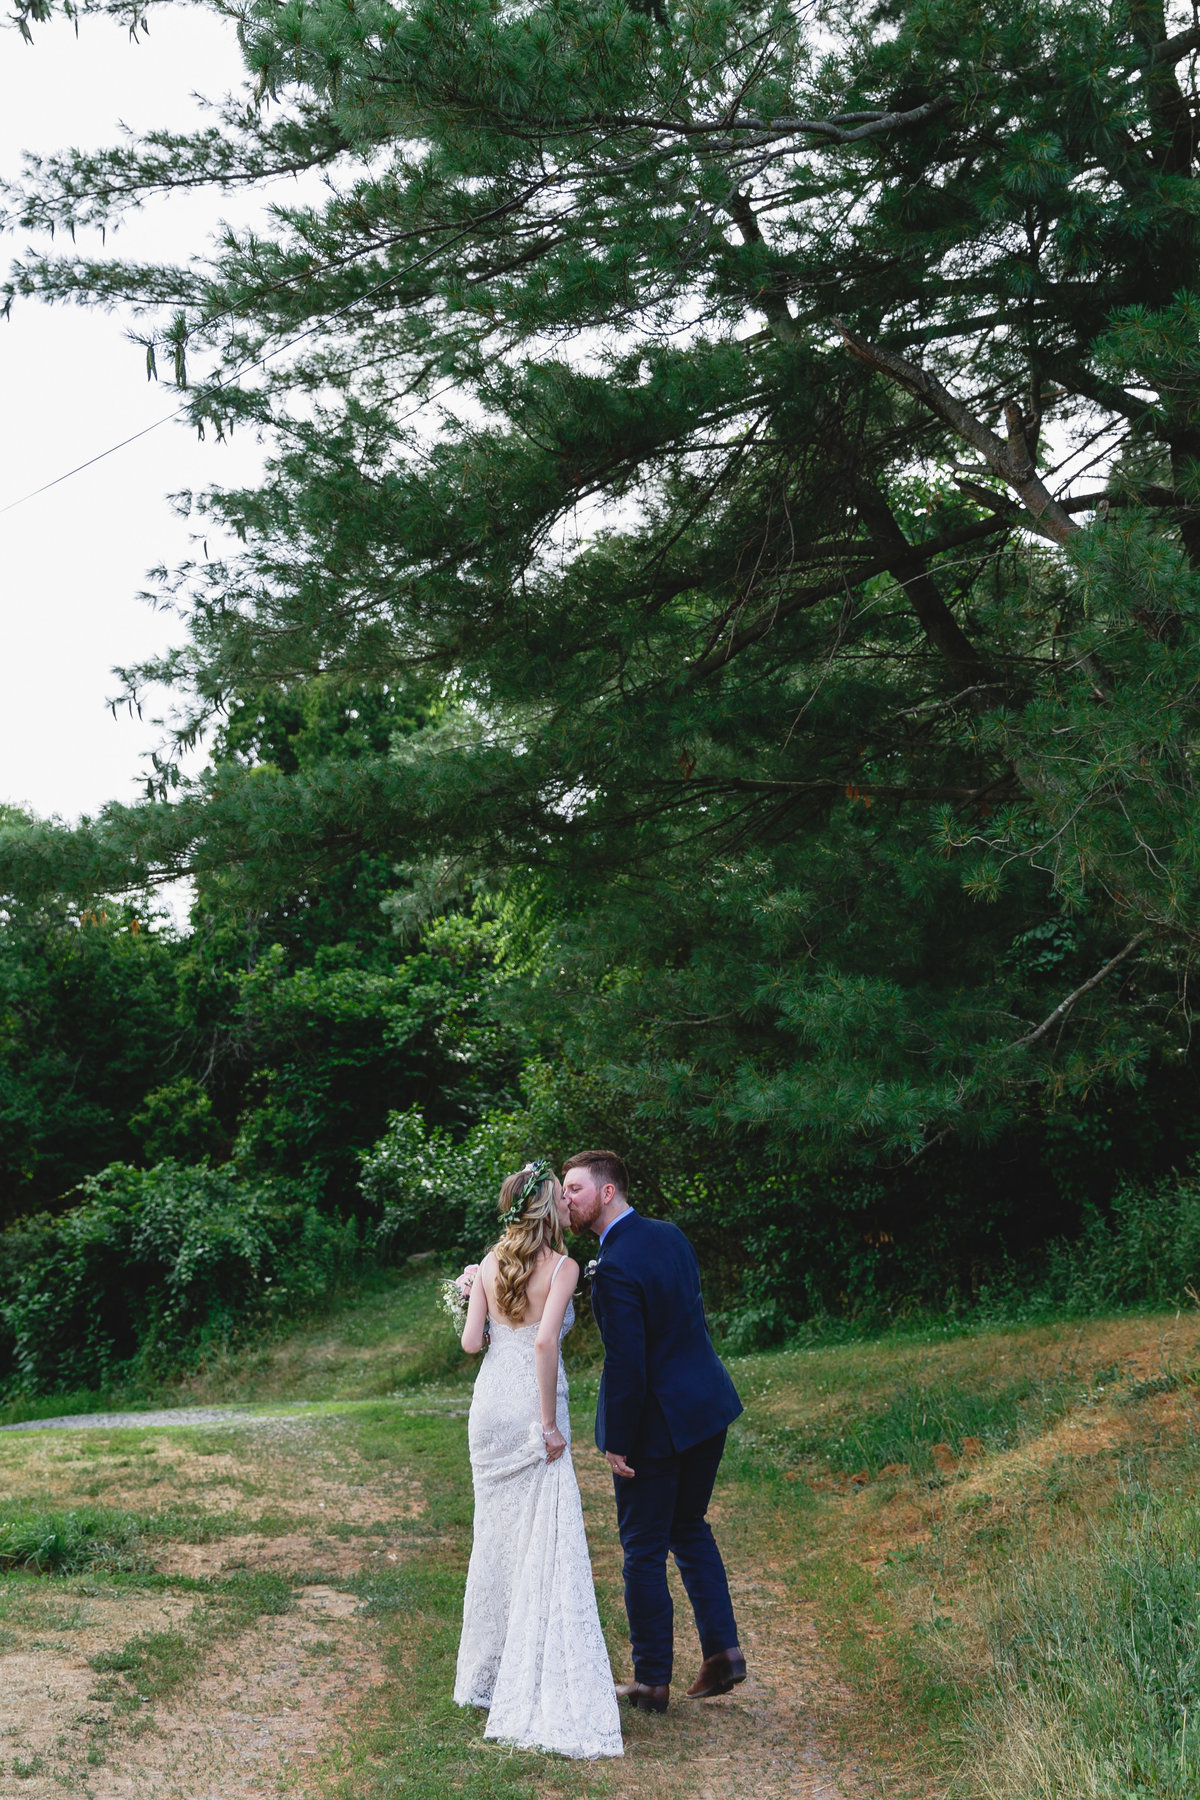 Chester County Farm Wedding Photographer in Pennsylvania 079